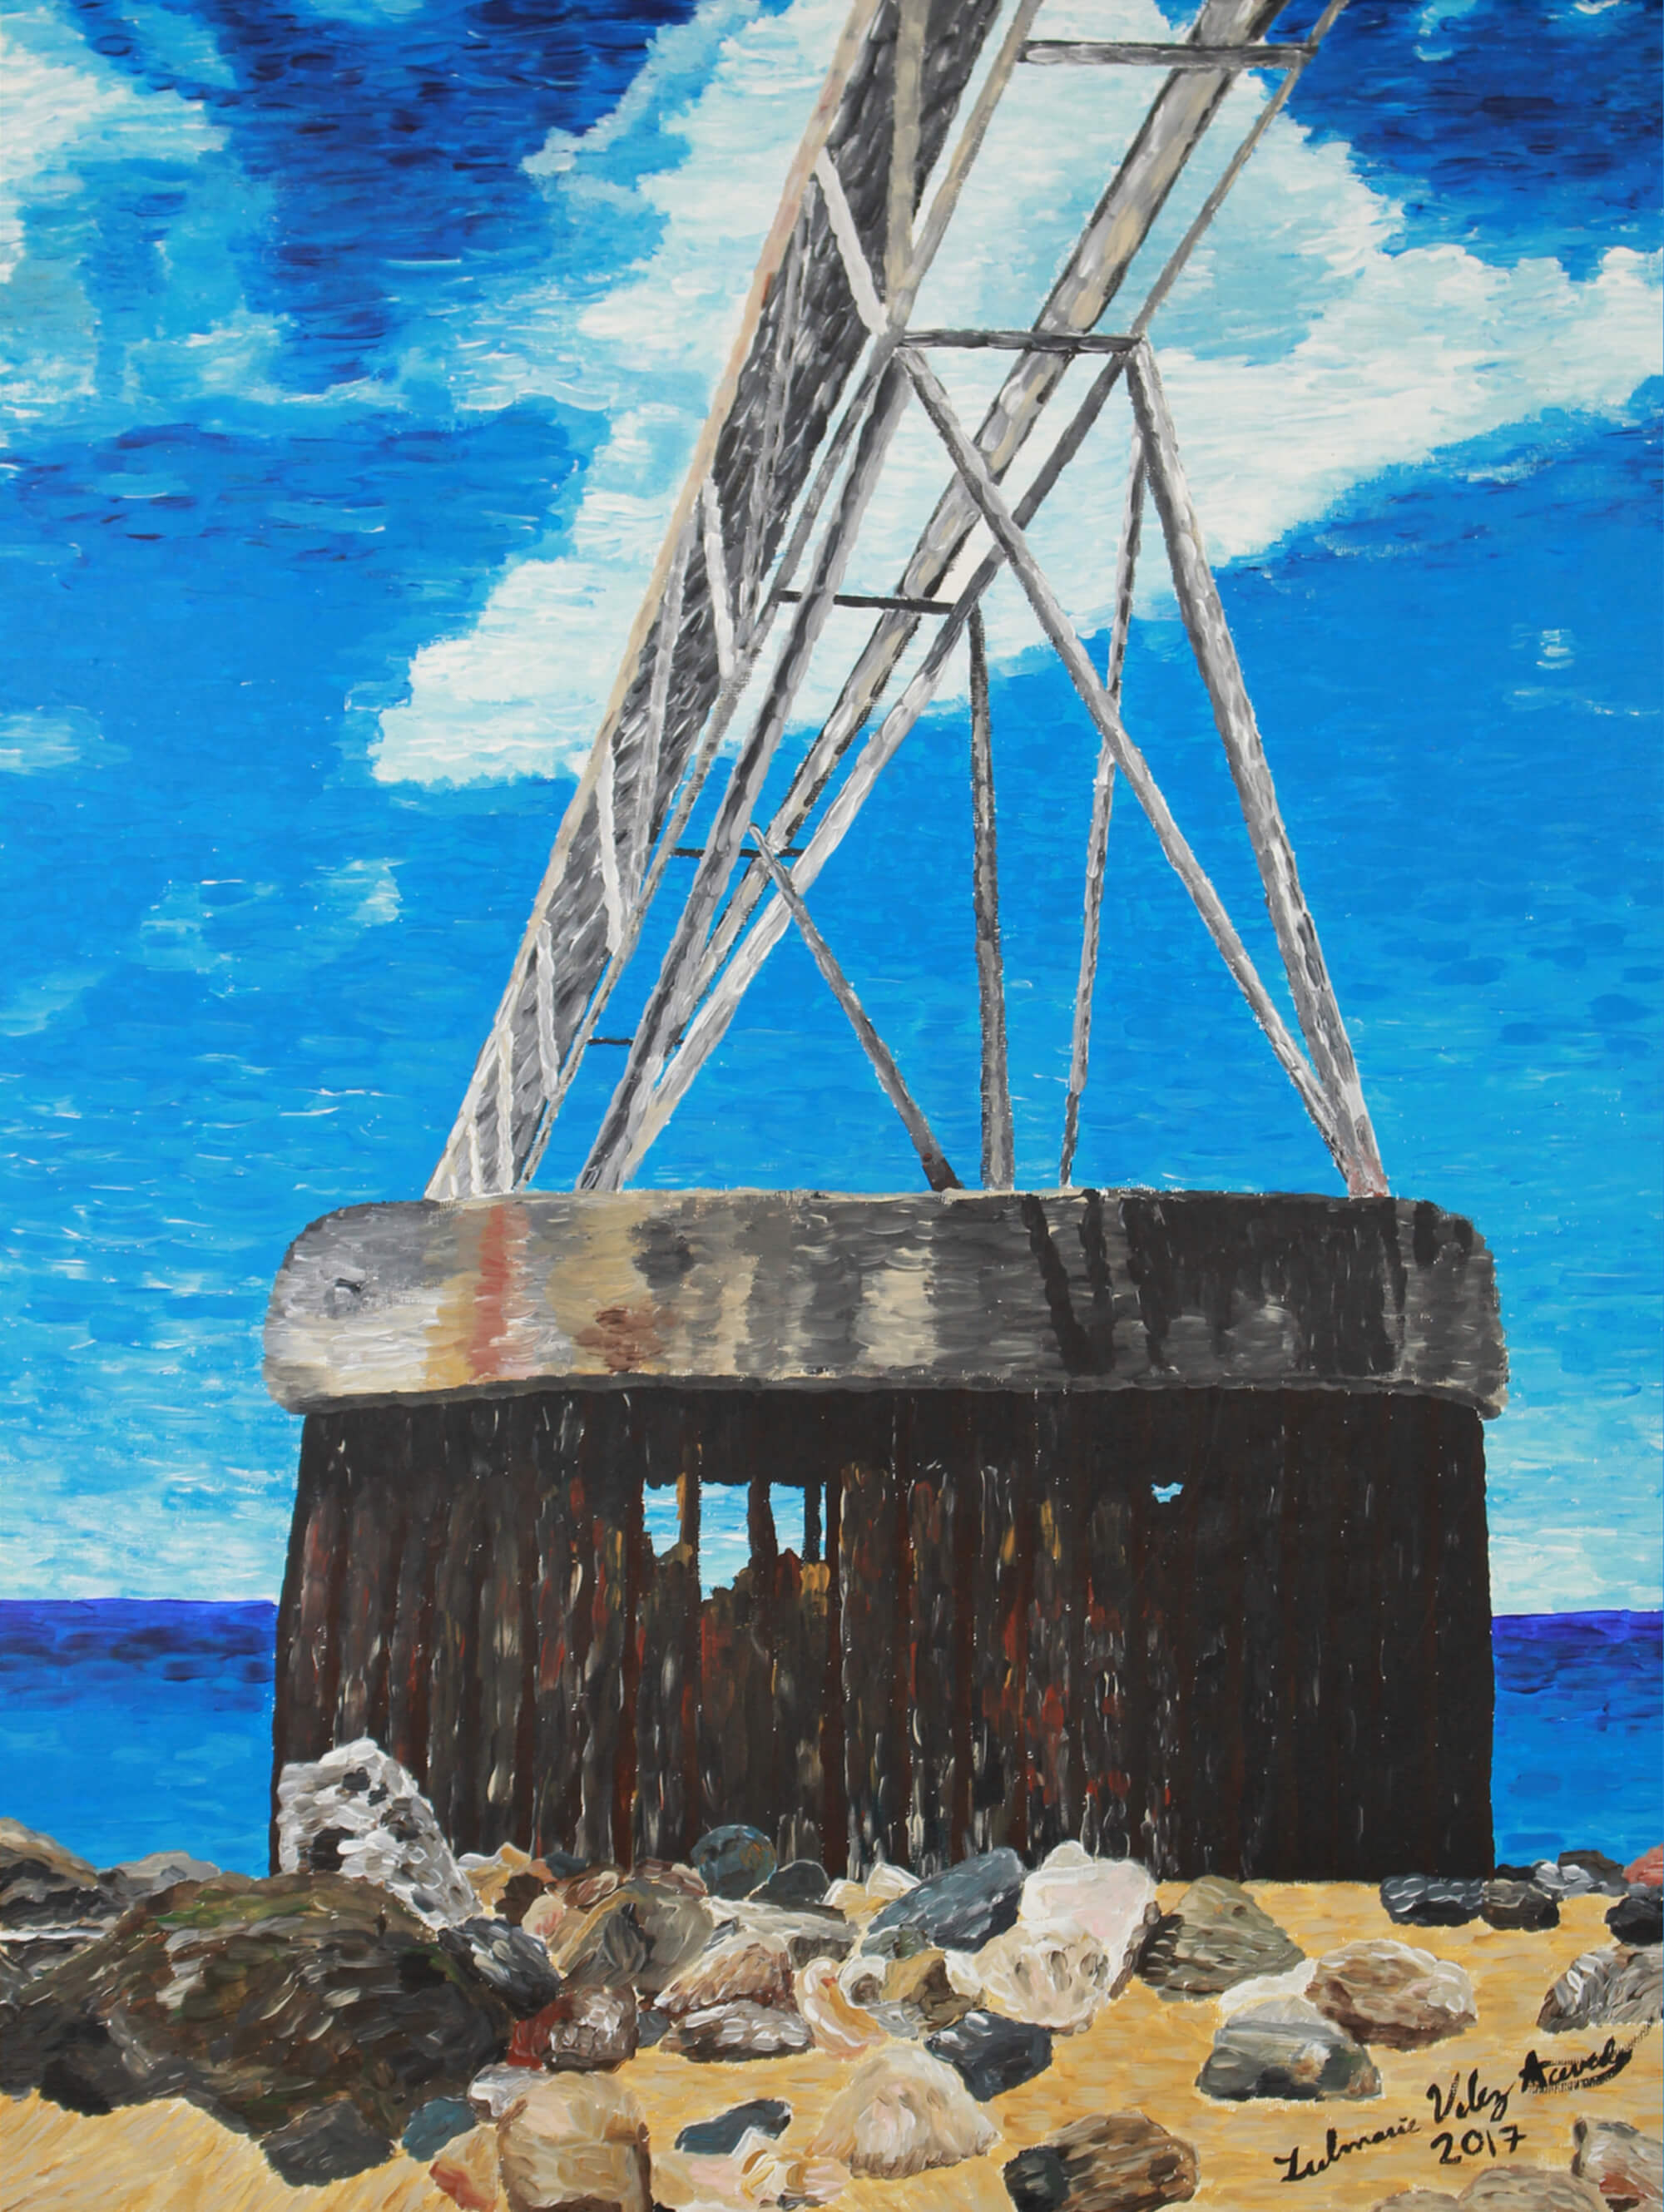 Print of an old dock with blue sea and sky on the background by Zulmarie Vélez Acevedo.